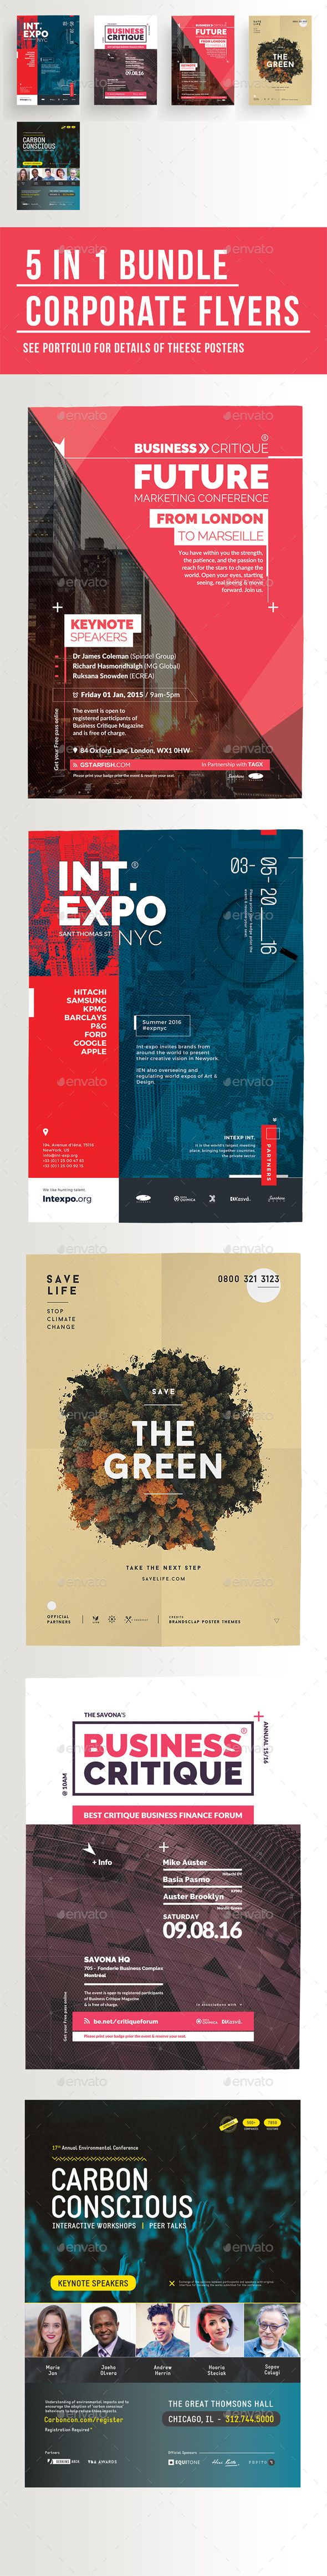 5 in 1 Corporate Flyers Template Bundle - Corporate Flyers